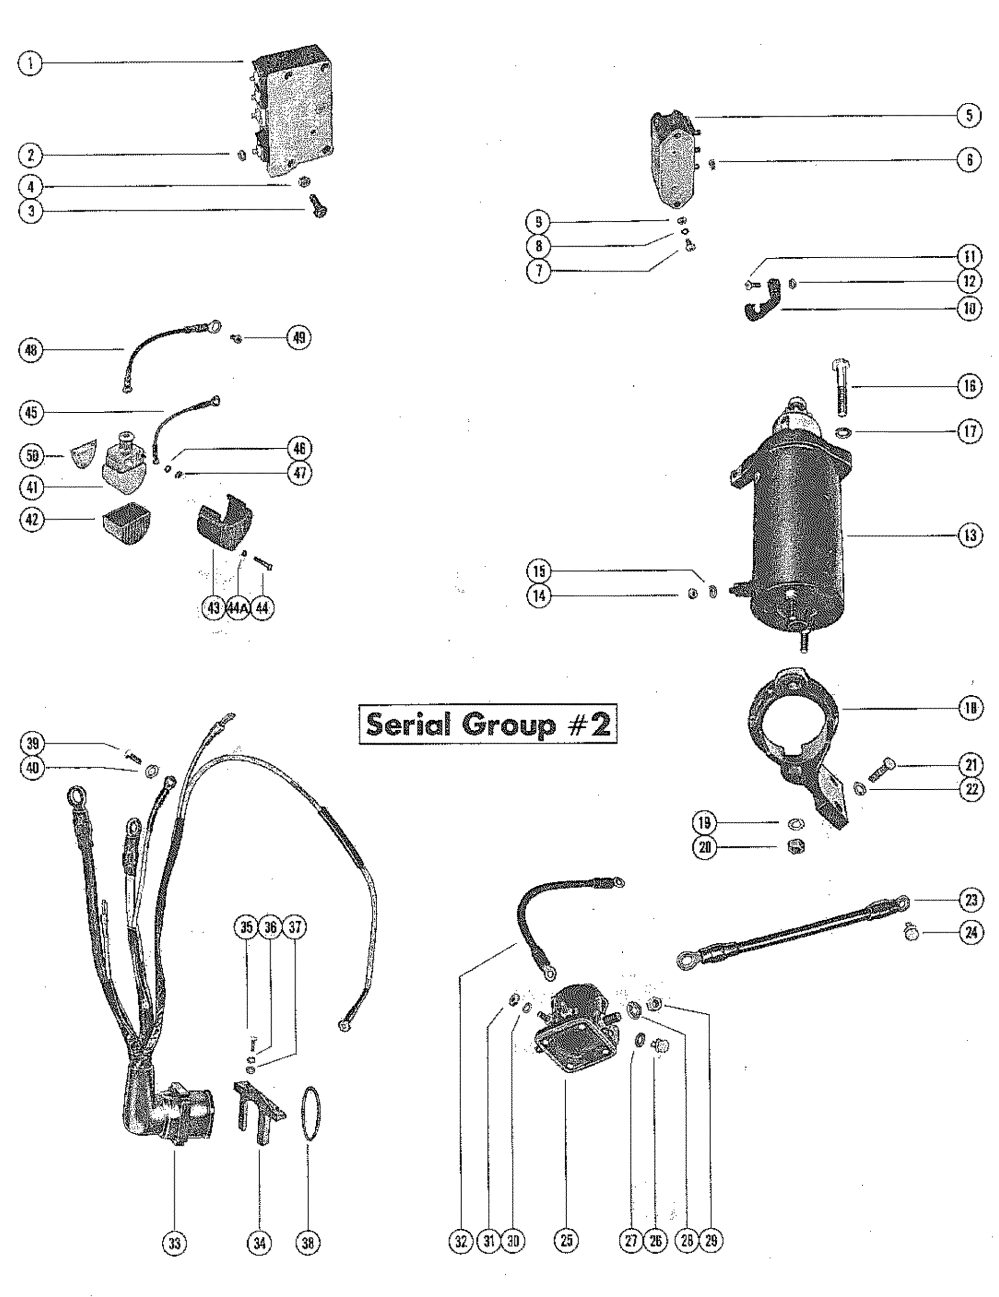 medium resolution of mercury mercury 850 4 cyl 7010108 thru 7071372 starter motor and wiring harness serial group 2